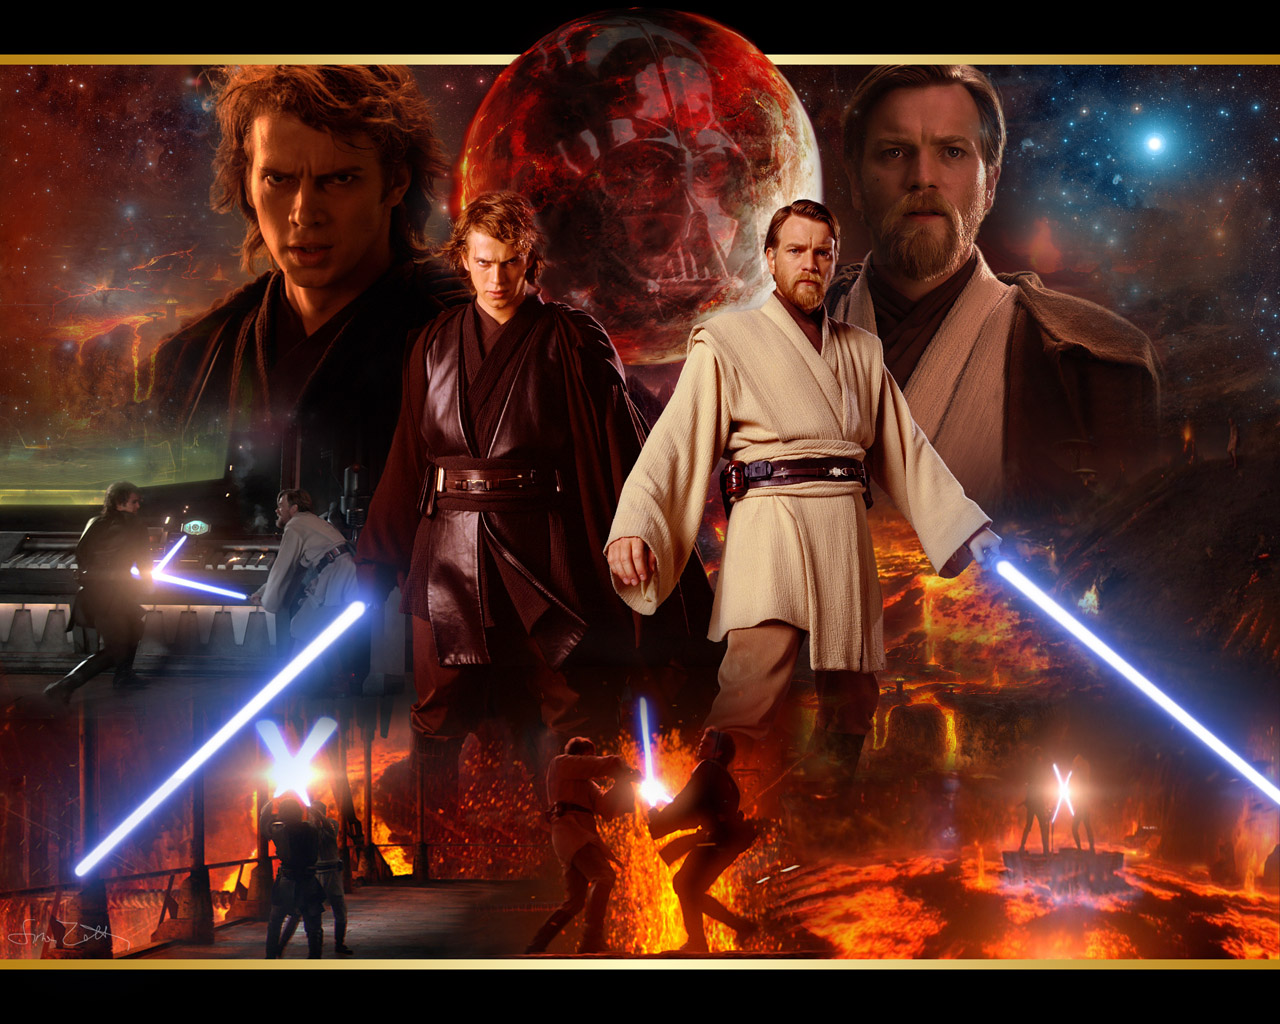 Star wars star wars wallpaper